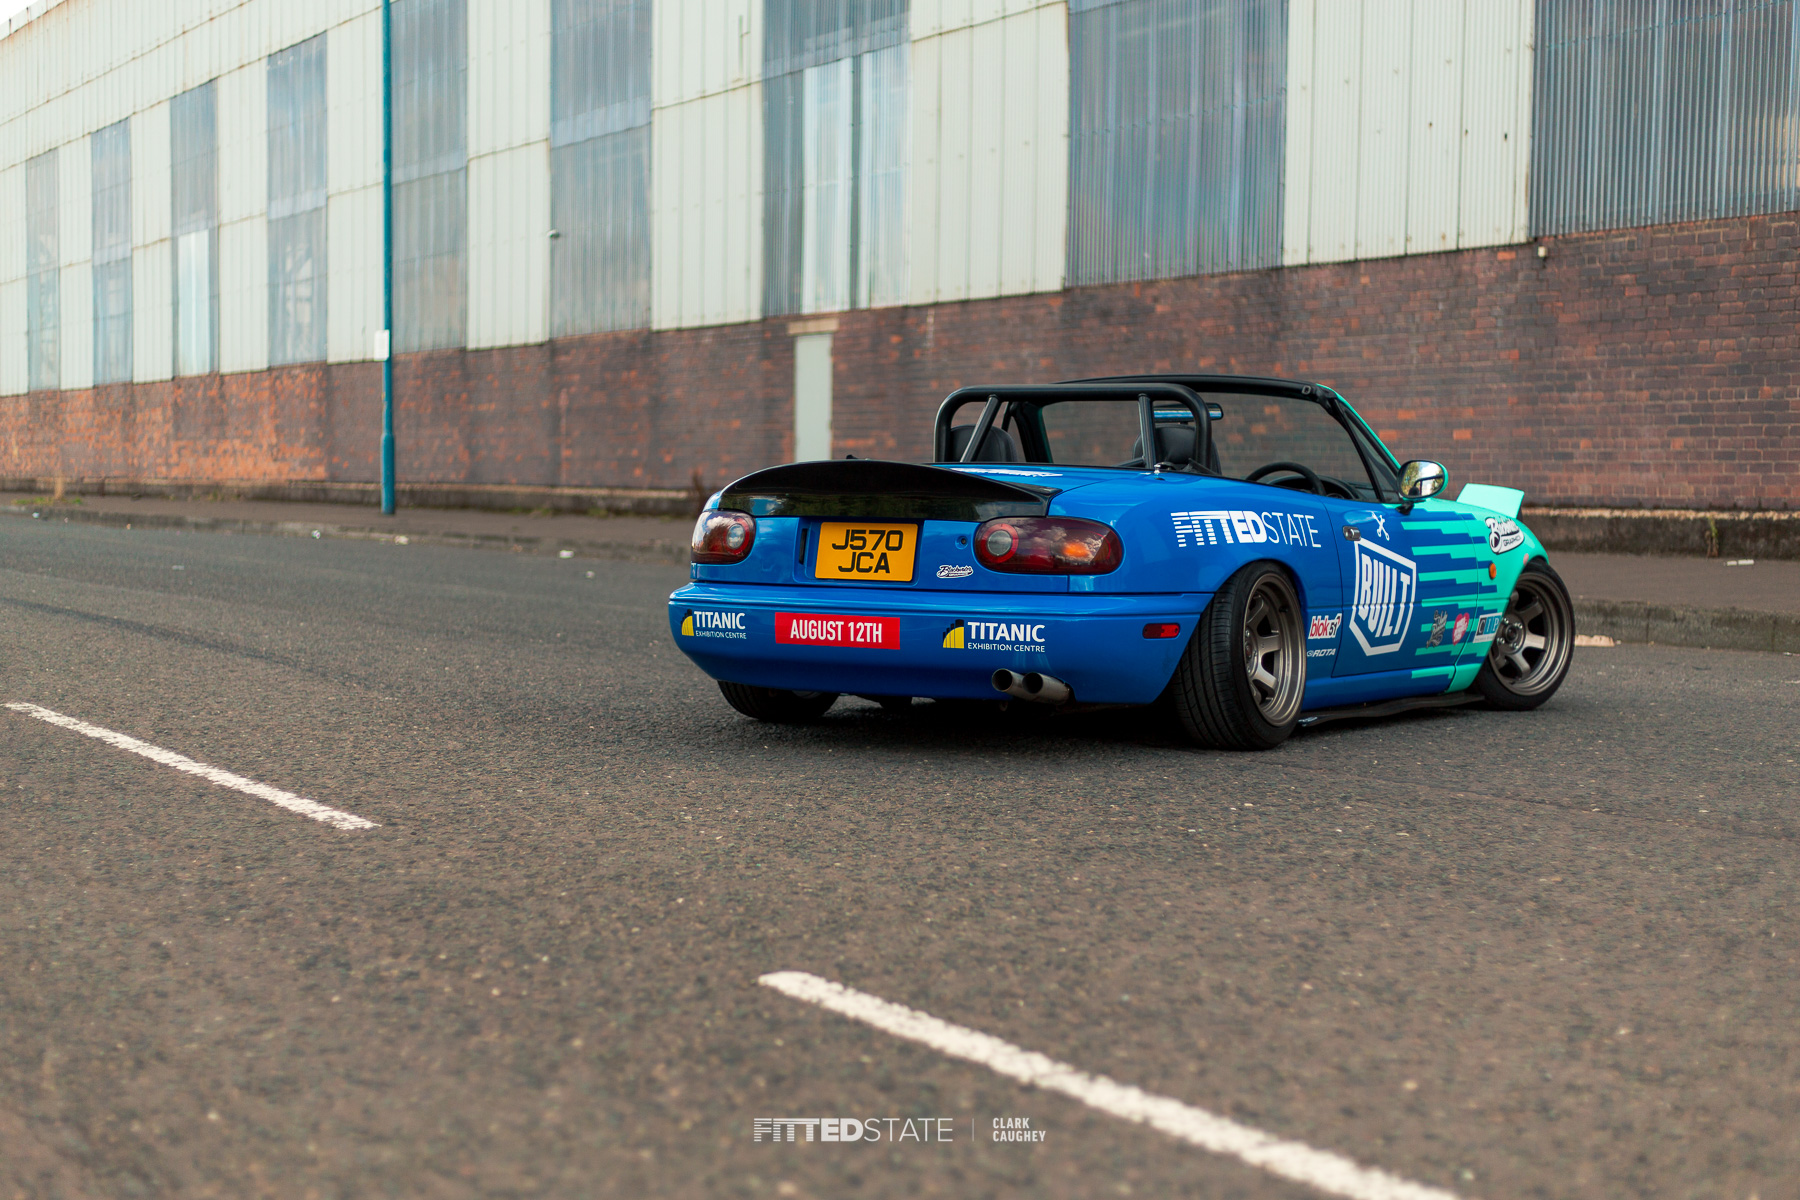 The Built Event Eunos Roadster / Mazda MX5 - Fitted State